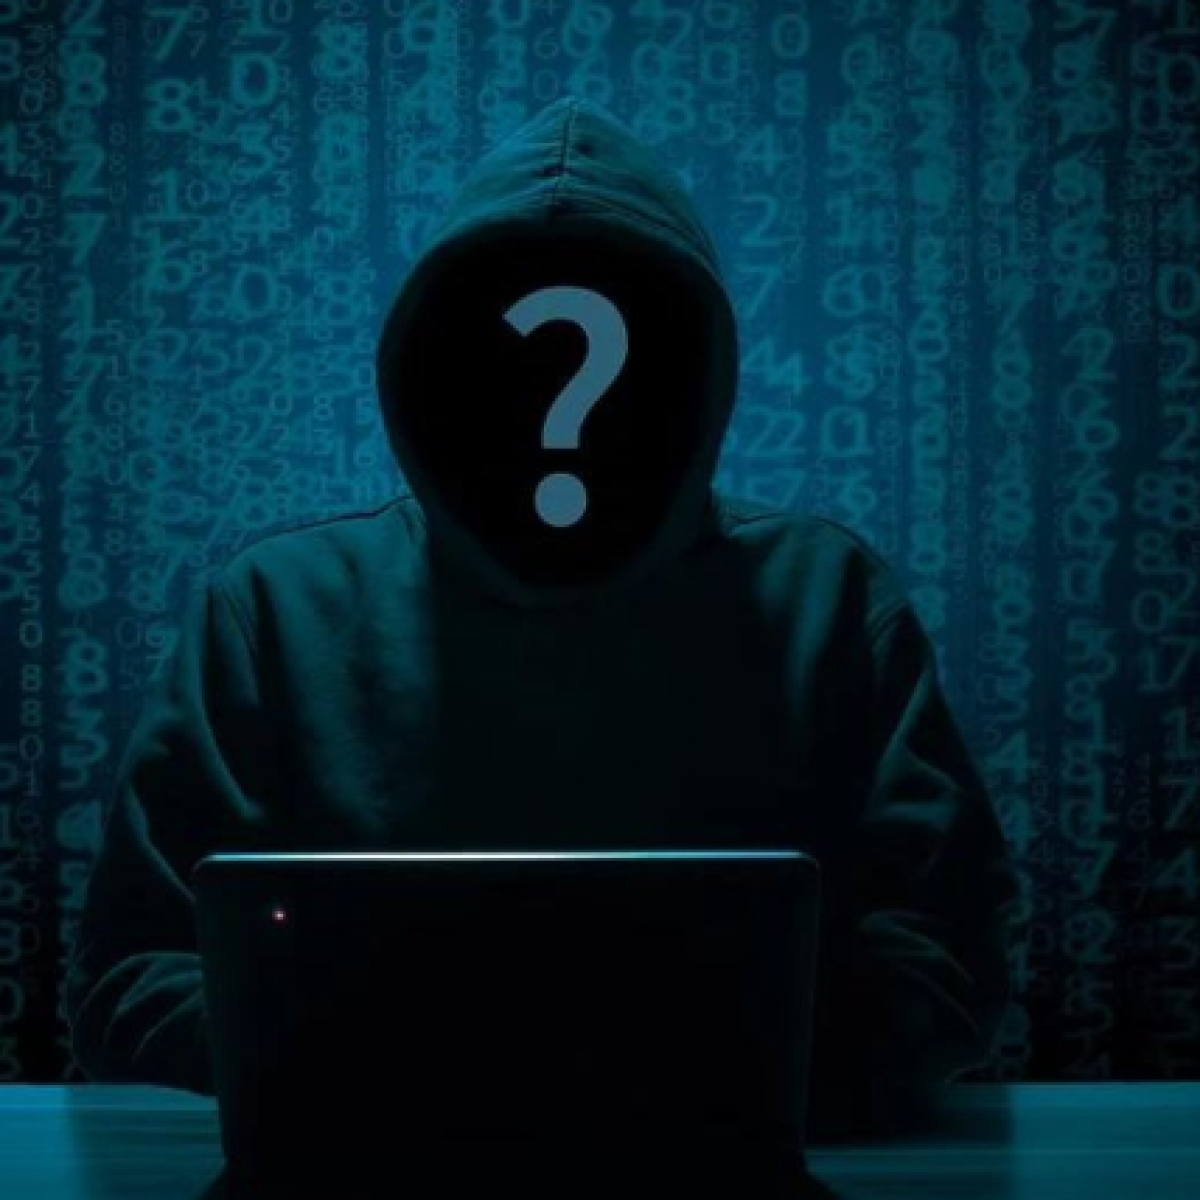 North Korean hackers may attack 20 lakh Indians with COVID-19 phishing emails: Report